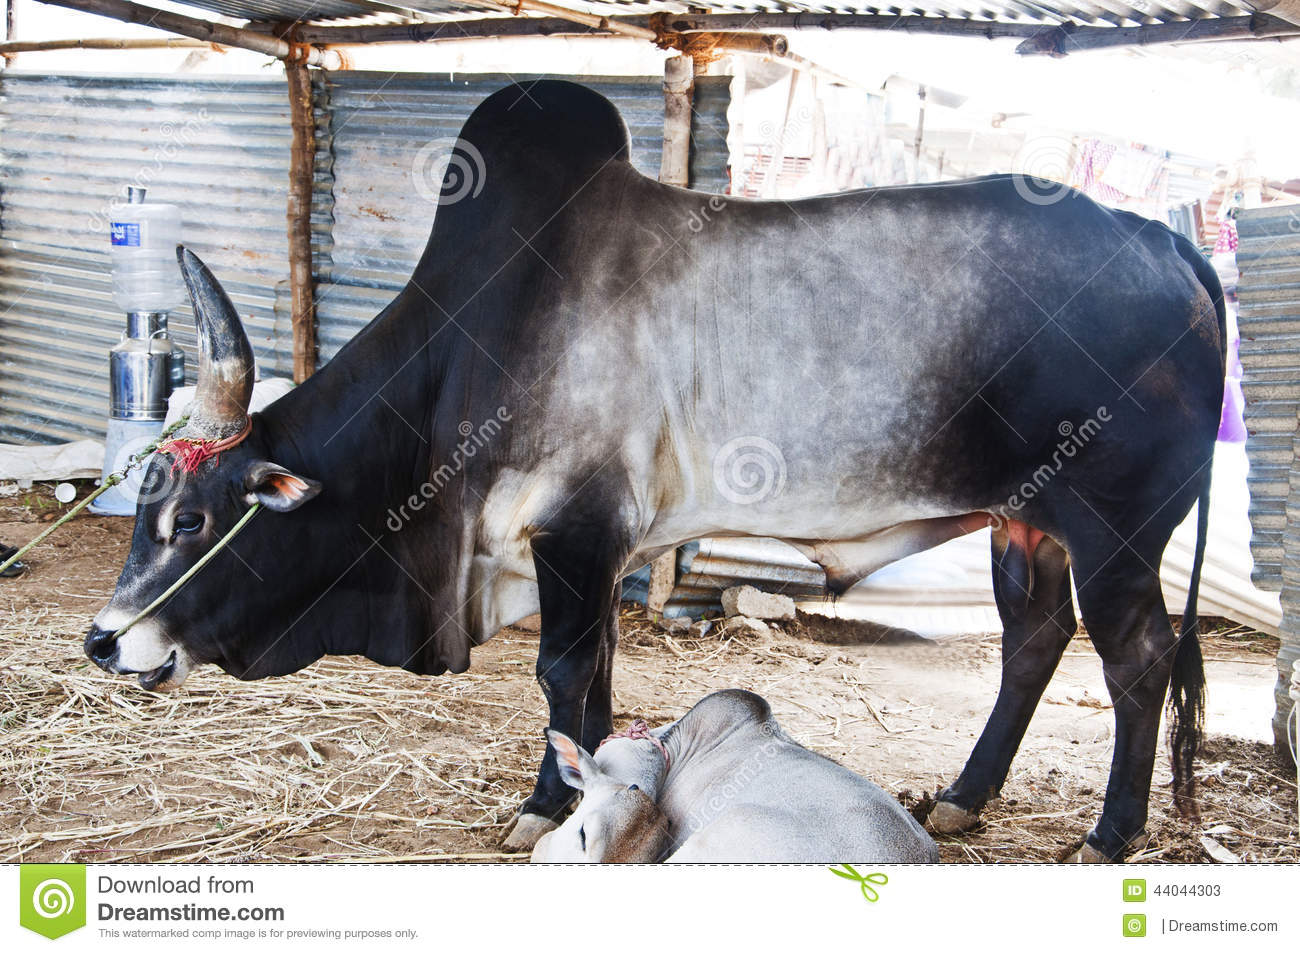 how to start a cow farm in tamilnadu